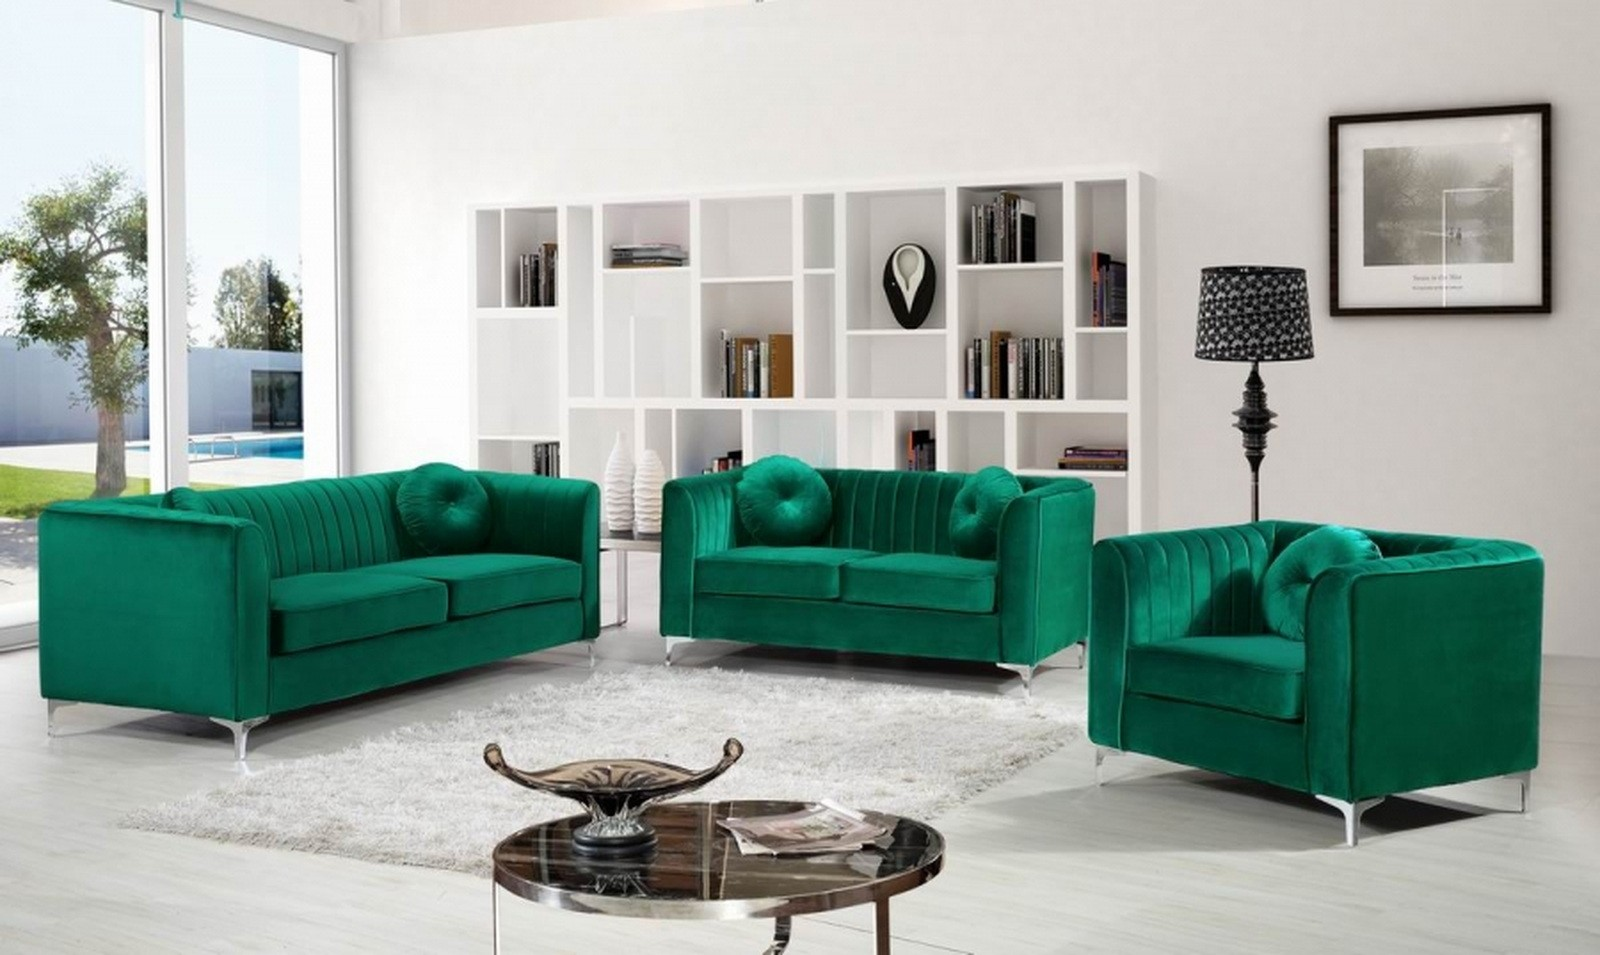 Awe Inspiring Meridian Isabelle 2 Piece Living Room Set In Green Pdpeps Interior Chair Design Pdpepsorg